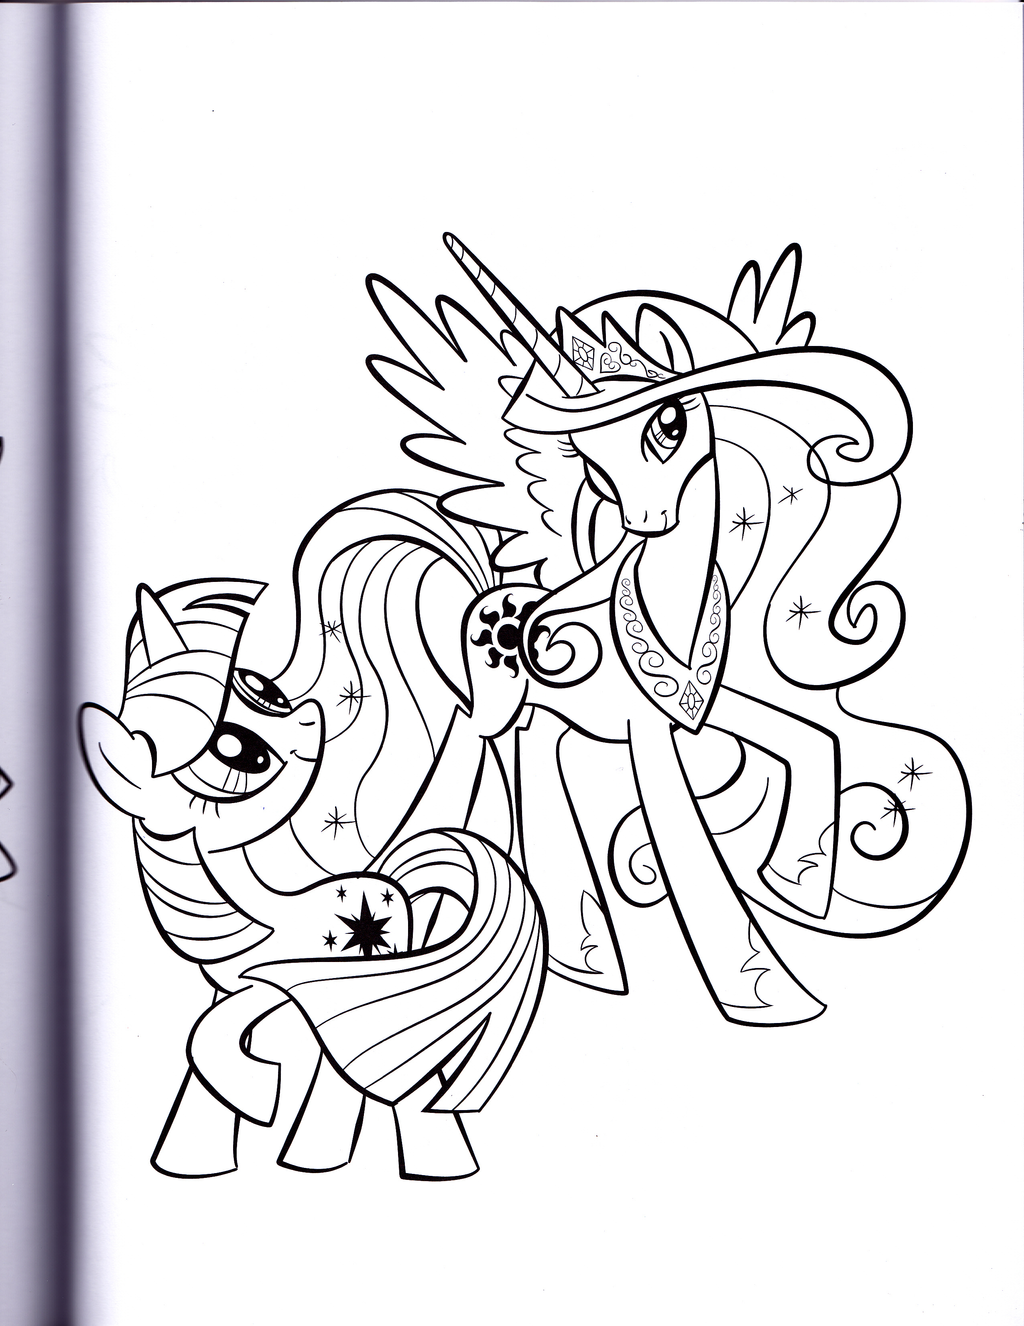 Twilight and Princess Celestia MLP Coloring book by kwark85 on